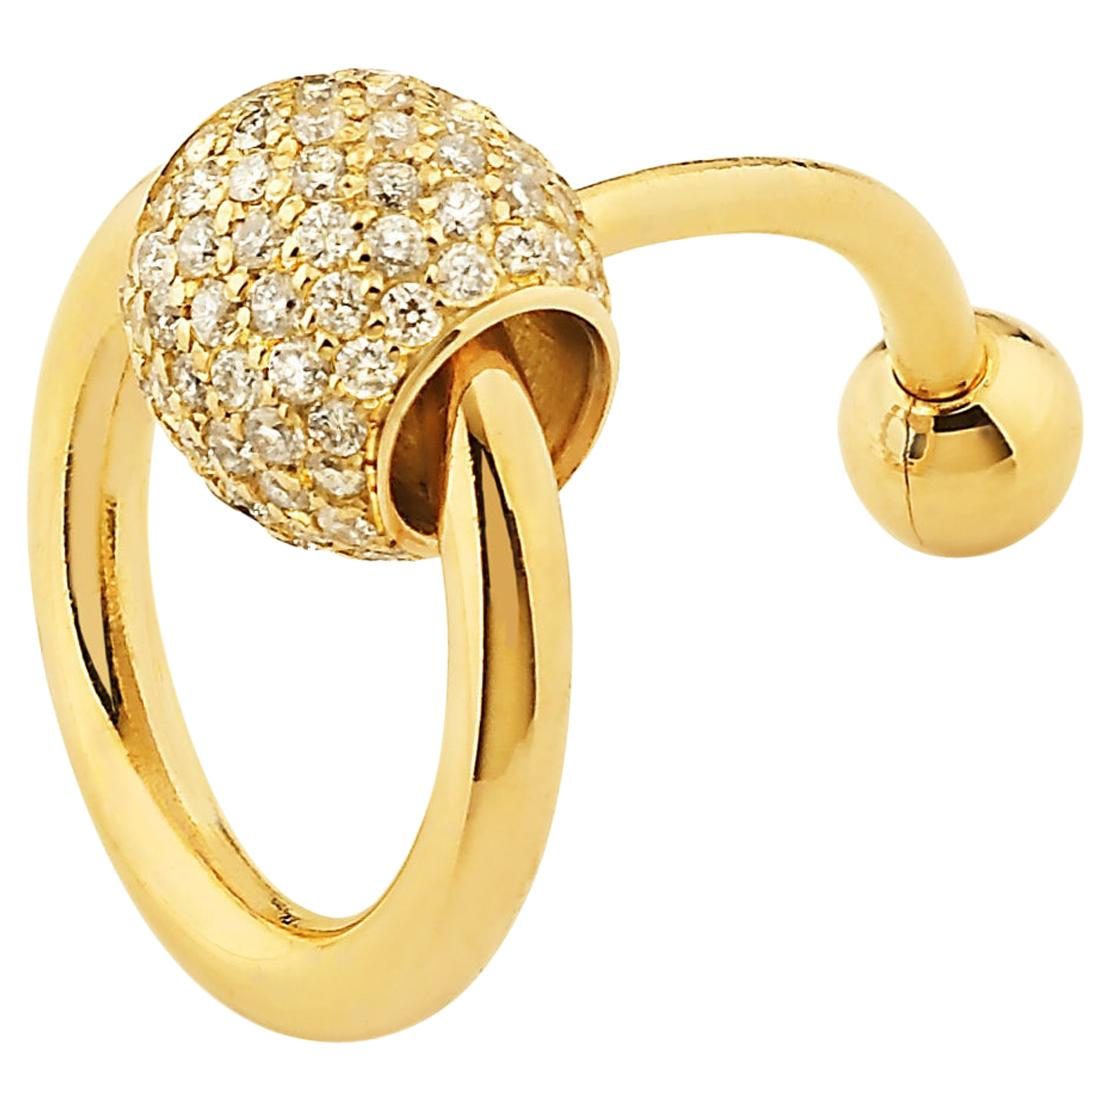 "Betony Vernon ""O-Ring Navel Piercing"" Piercing 18K Gold Pavée Diamond in Stock"